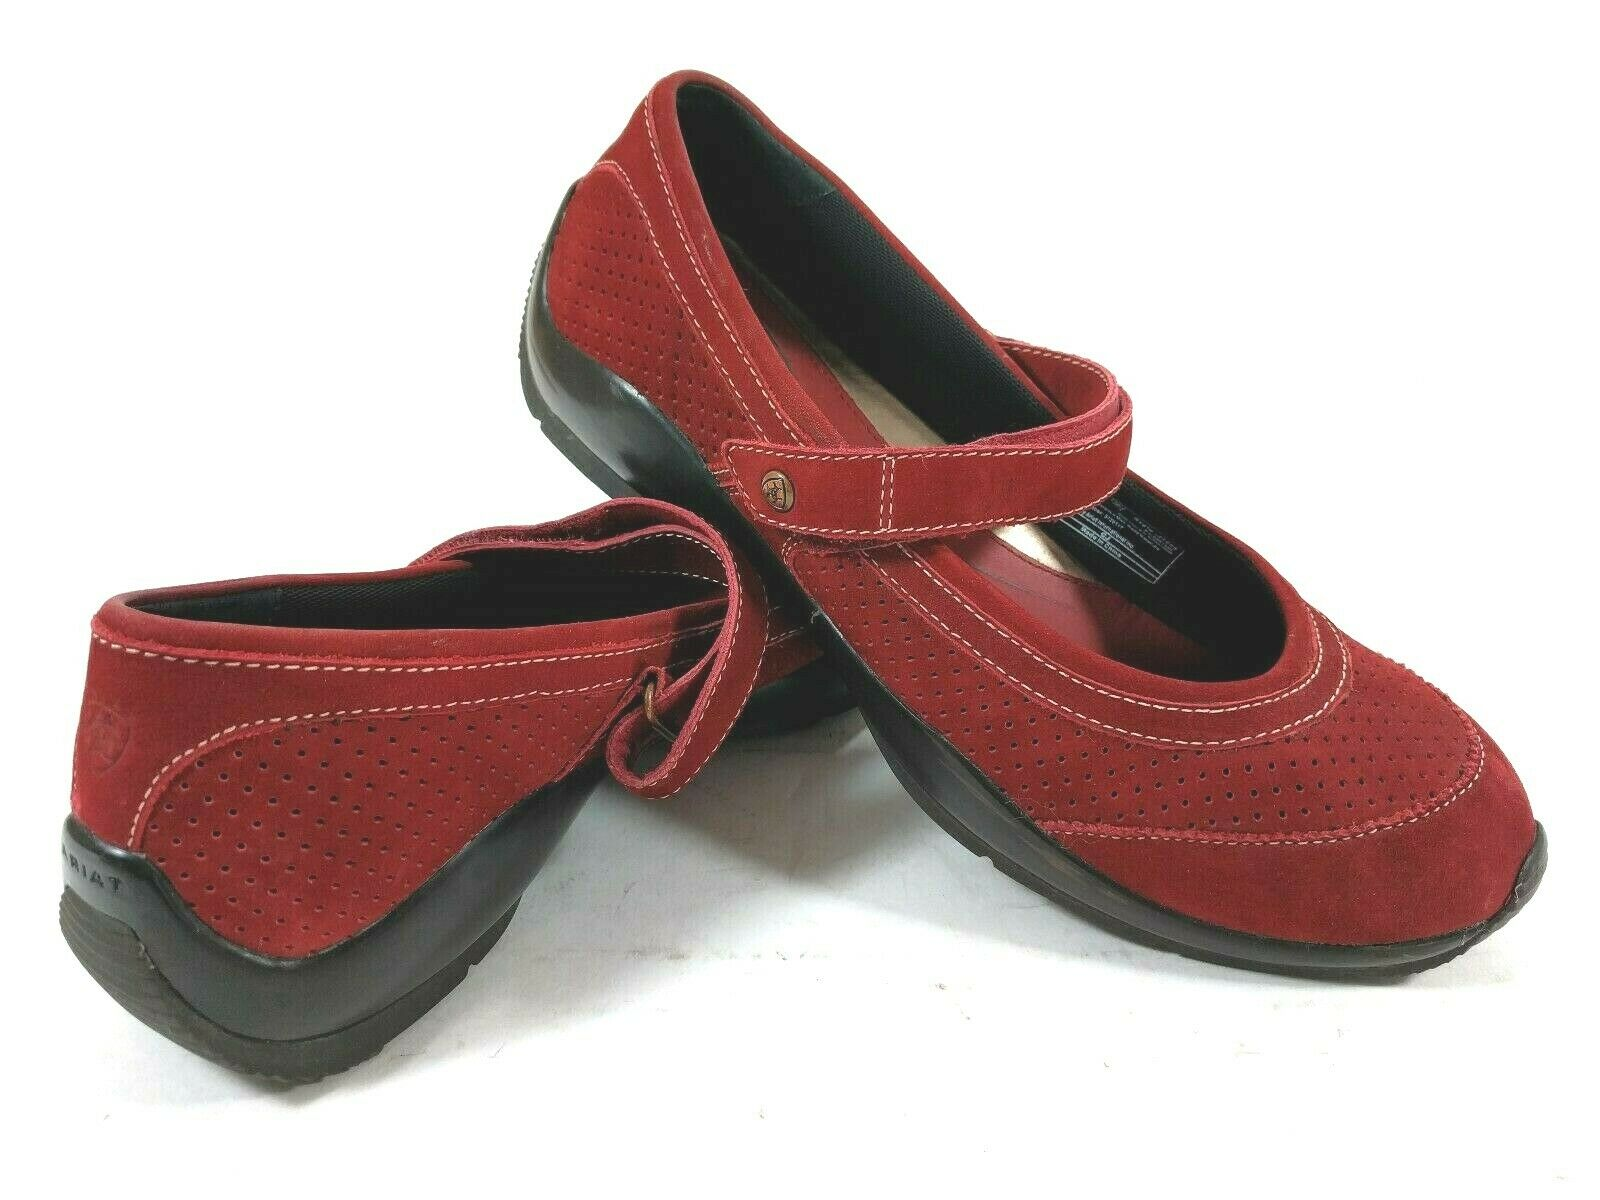 Ariat Red Suede Mary Jane Hook and Loop Slip On Ballet Toe Loafer shoes Size 9B